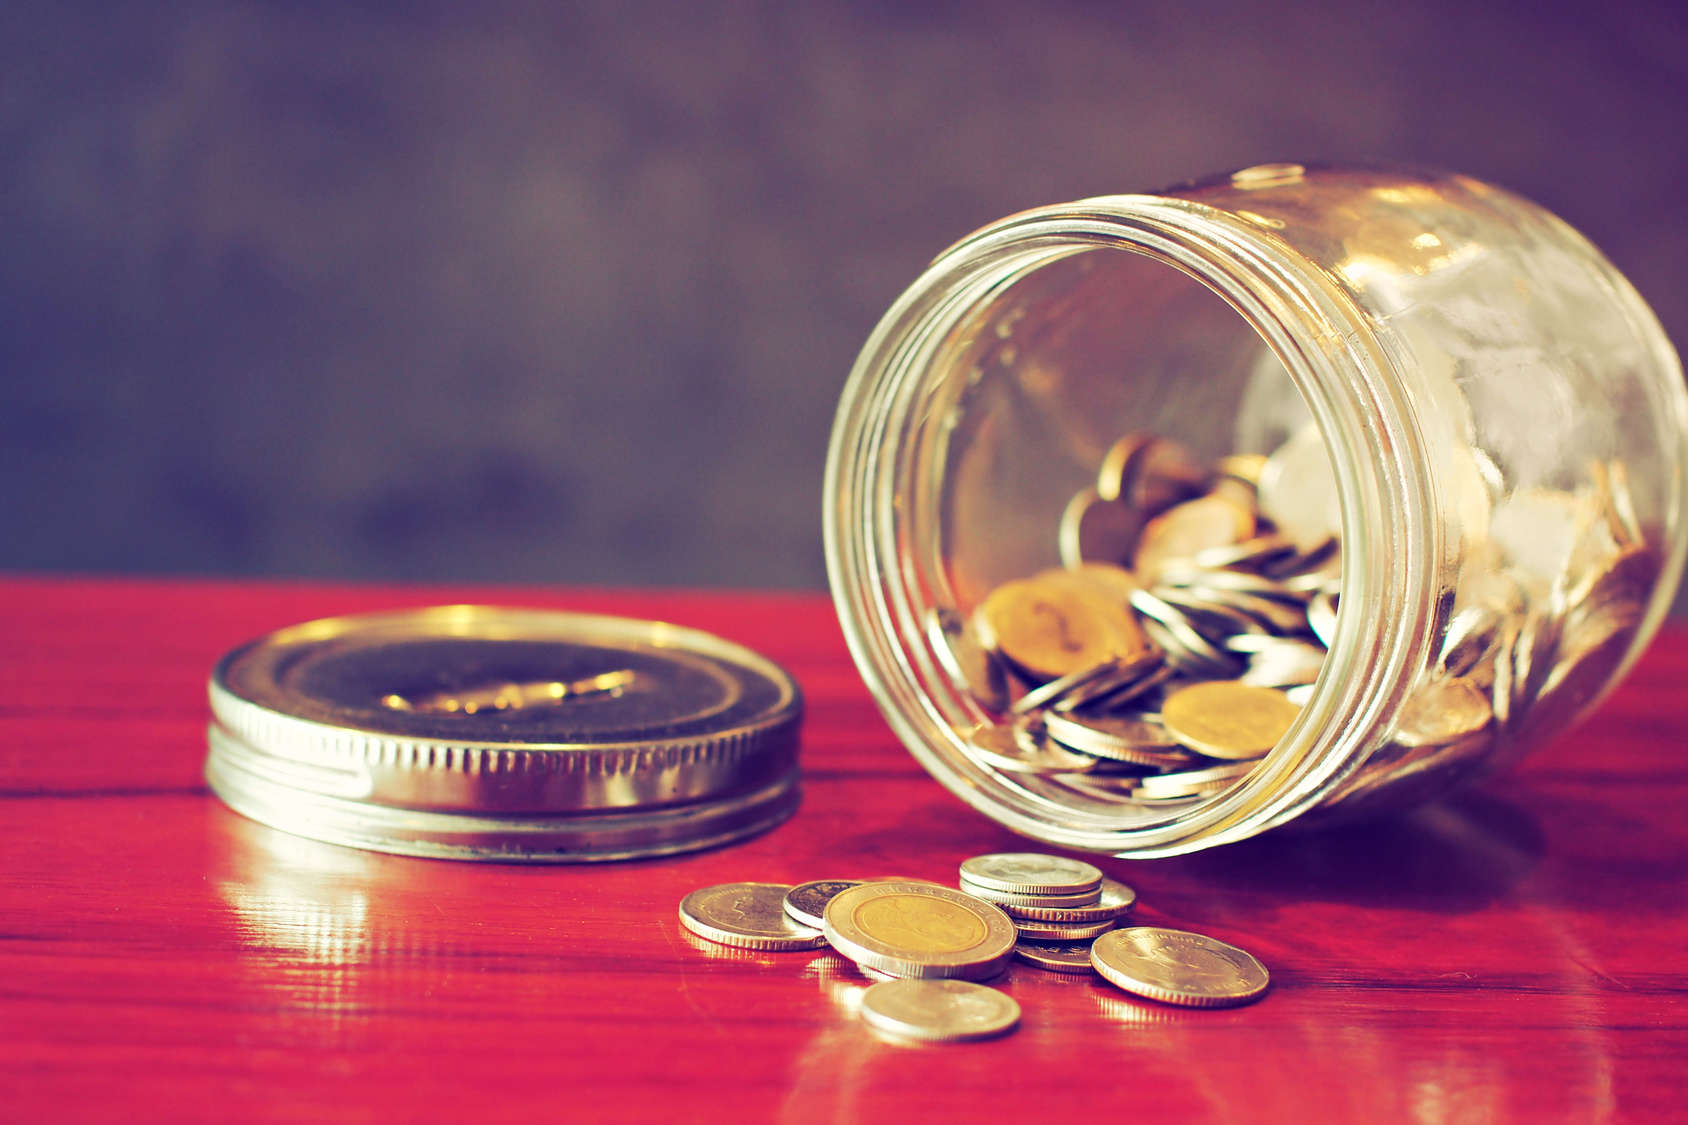 coin in money jar